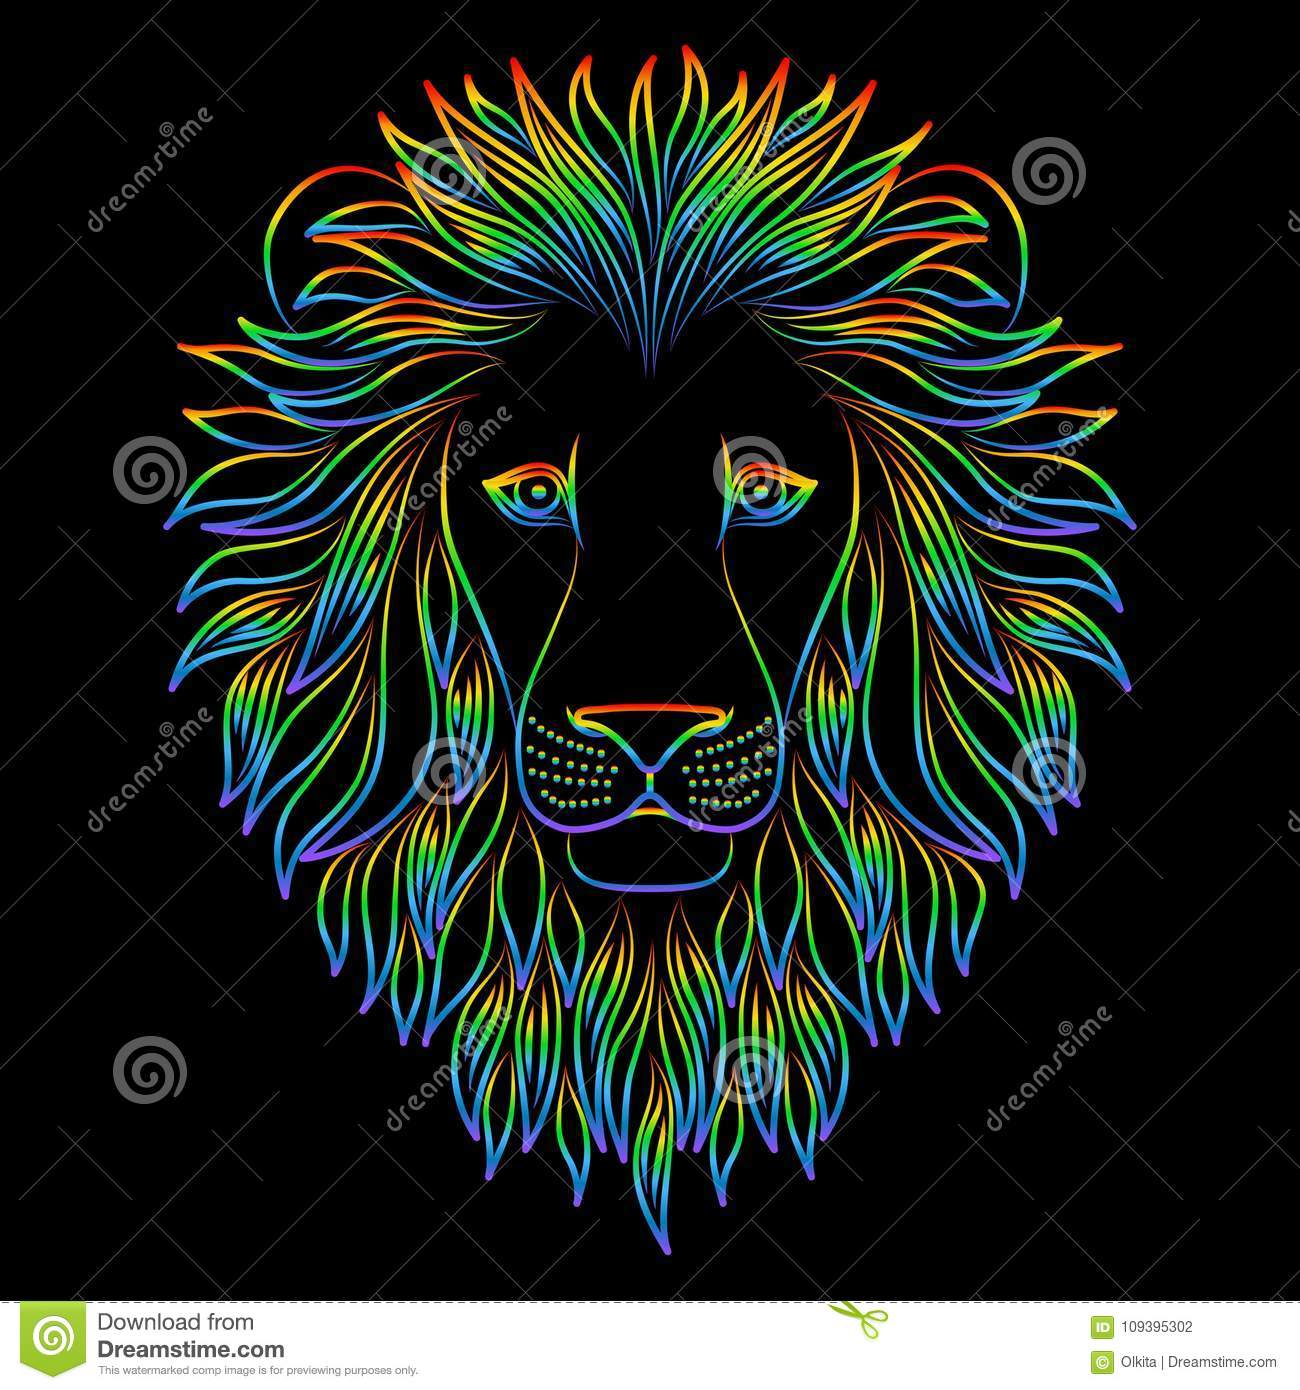 Isolated iridescent outline head of lion on black background. Rainbow line cartoon king of animals portrait. Curve lines.